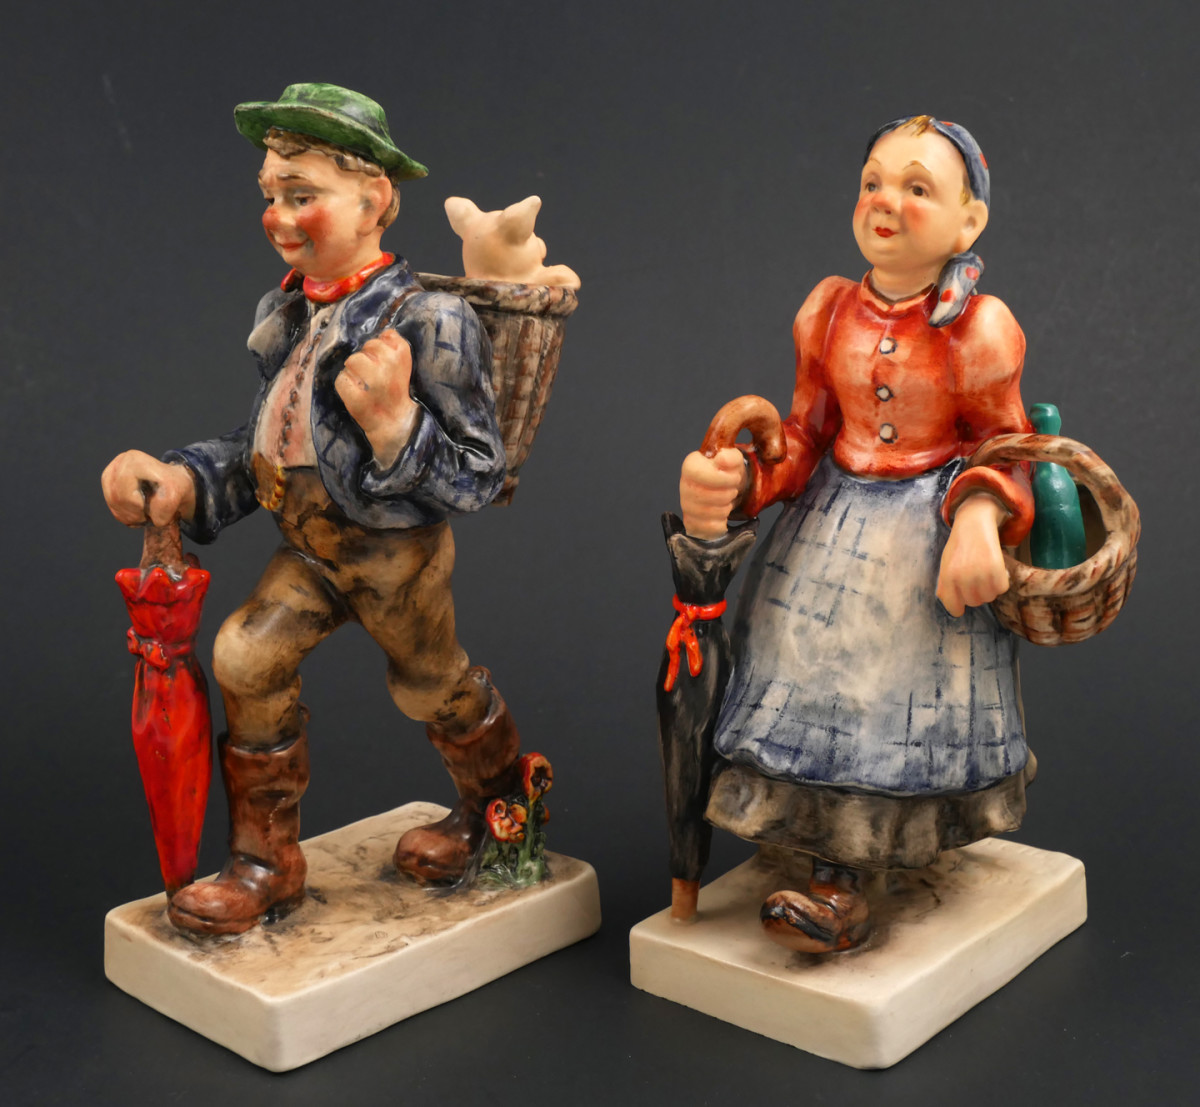 Hummel figurines The Mamas and the Papas